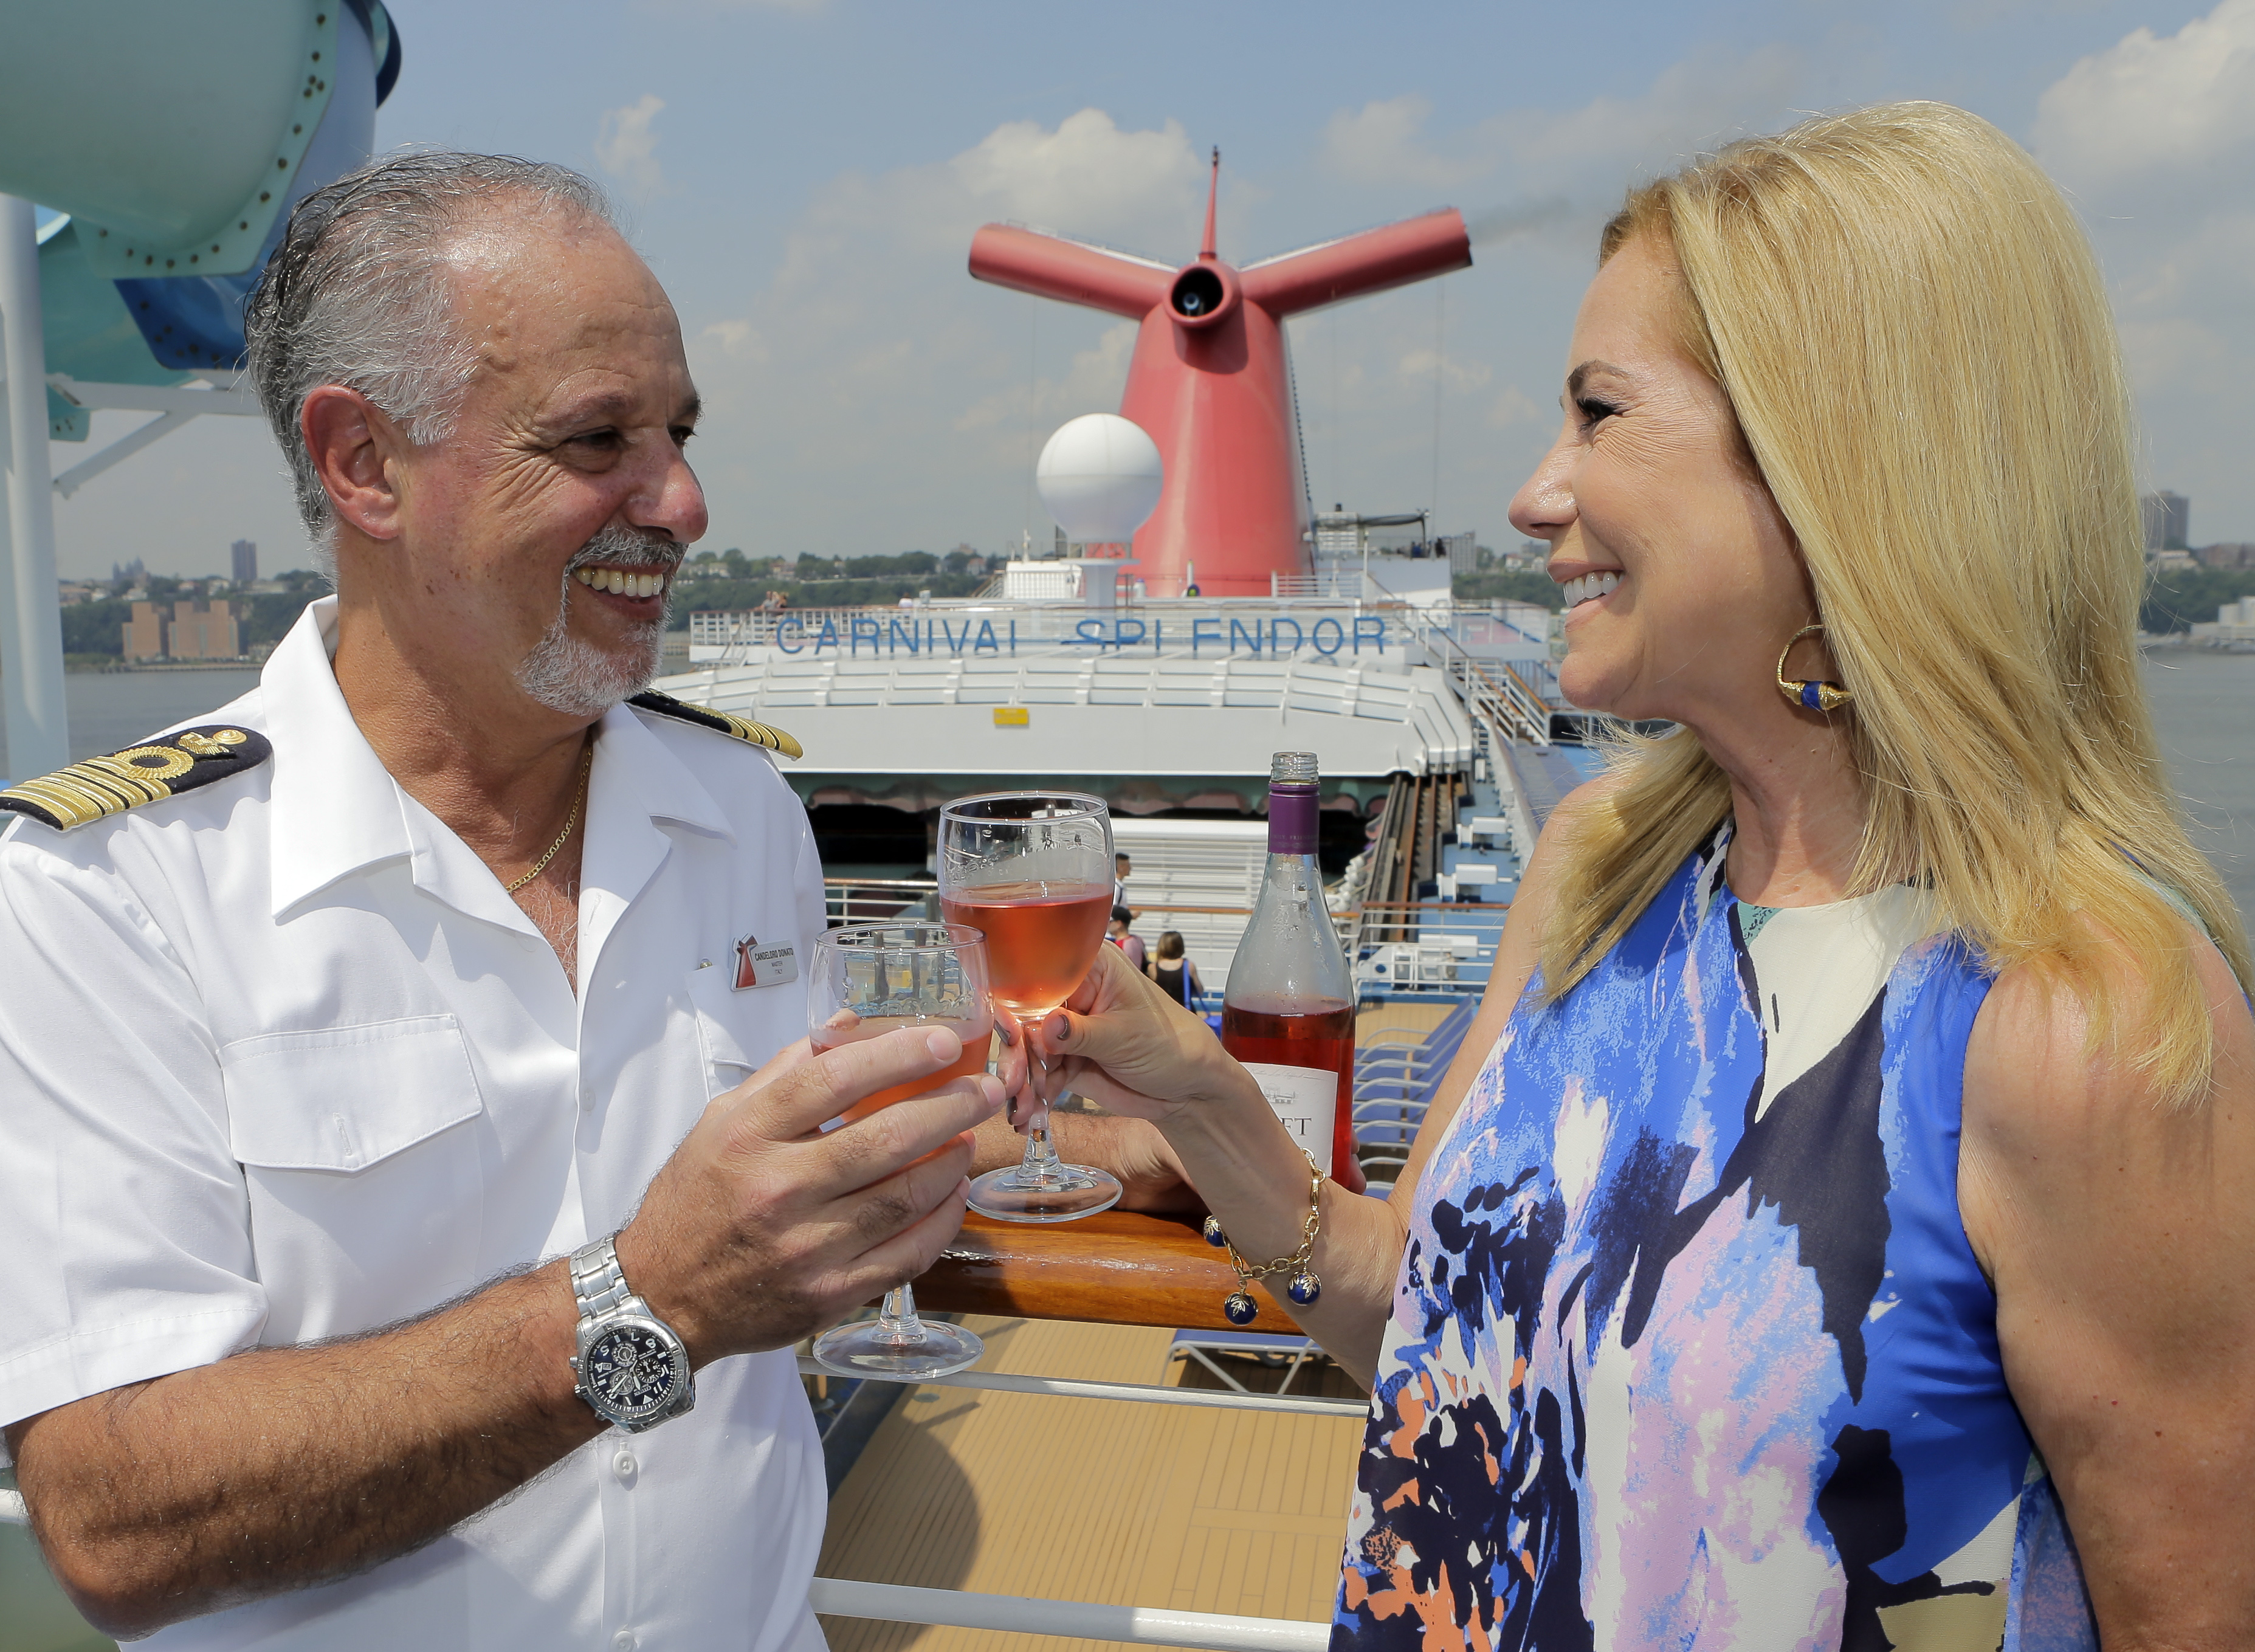 Kathie Lee Gifford Debuts Her New 'GIFFT' Pinot Noir Rose At Special Event Onboard Carnival Splendor in NYC